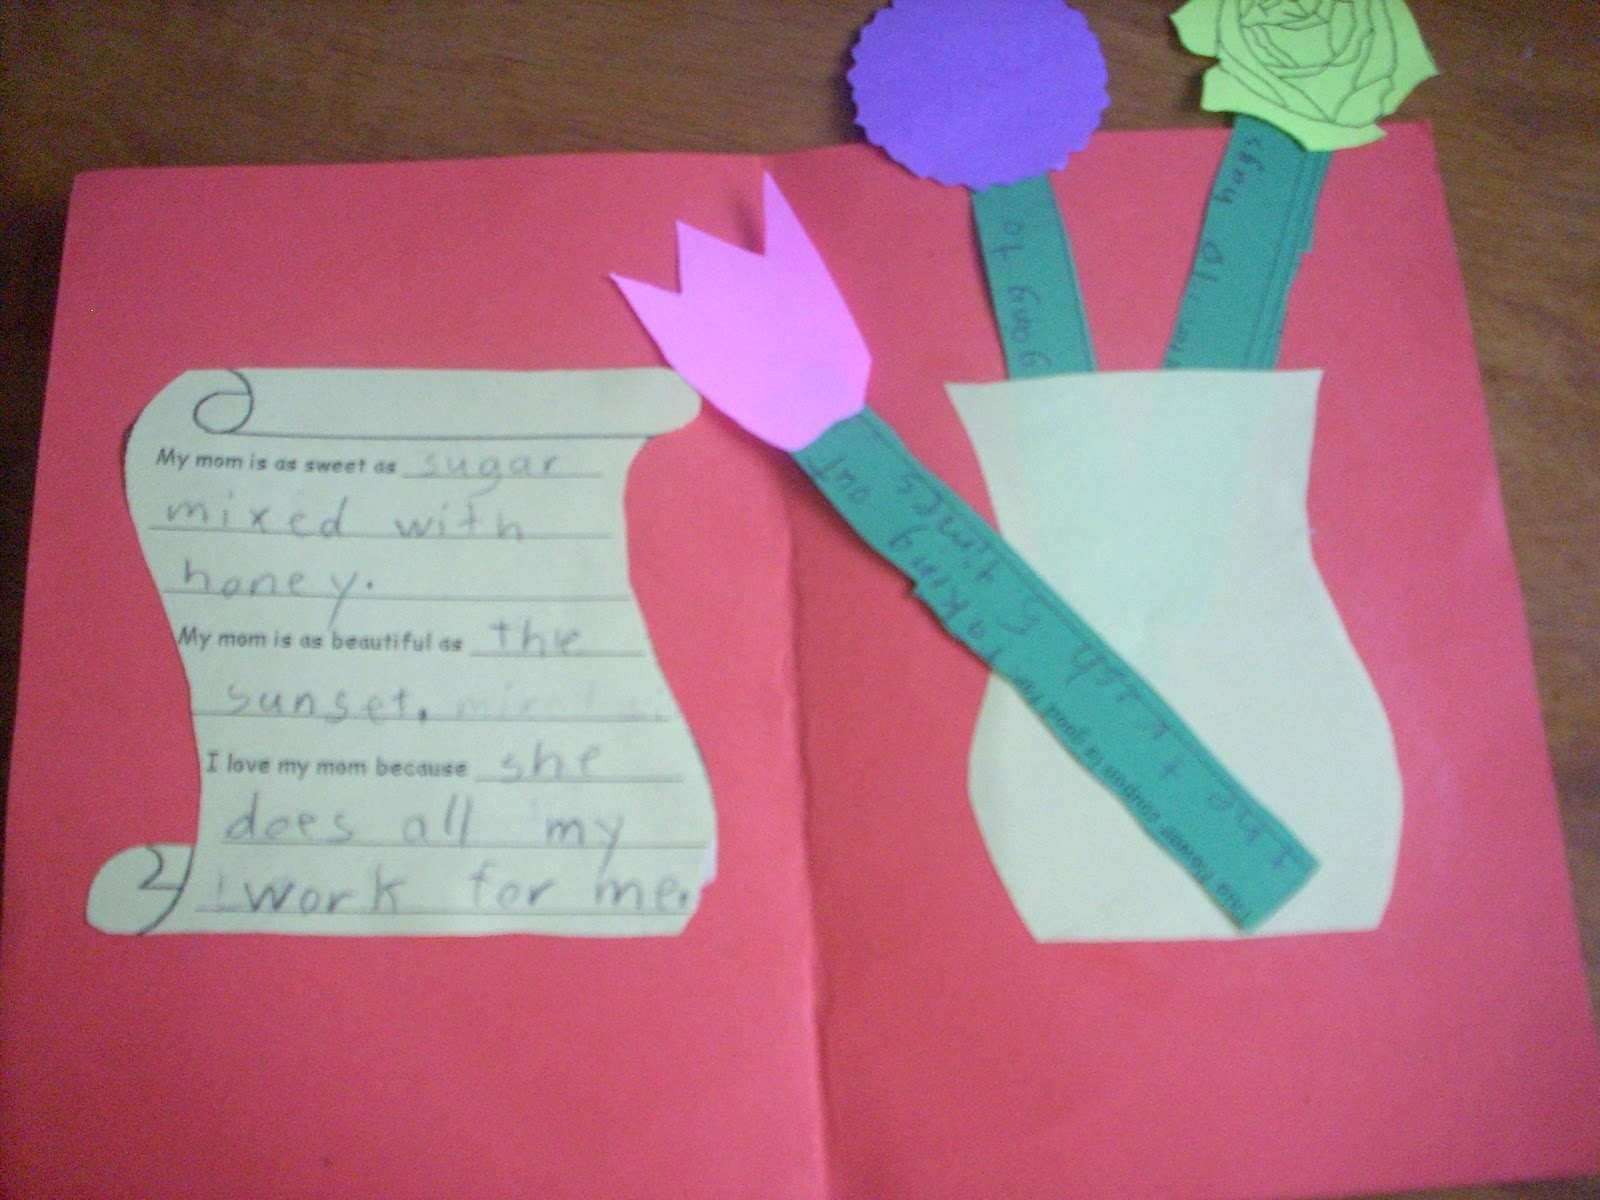 48 Create Mothers Day Cards Templates Ks2 Now with Mothers Day Cards Templates Ks2